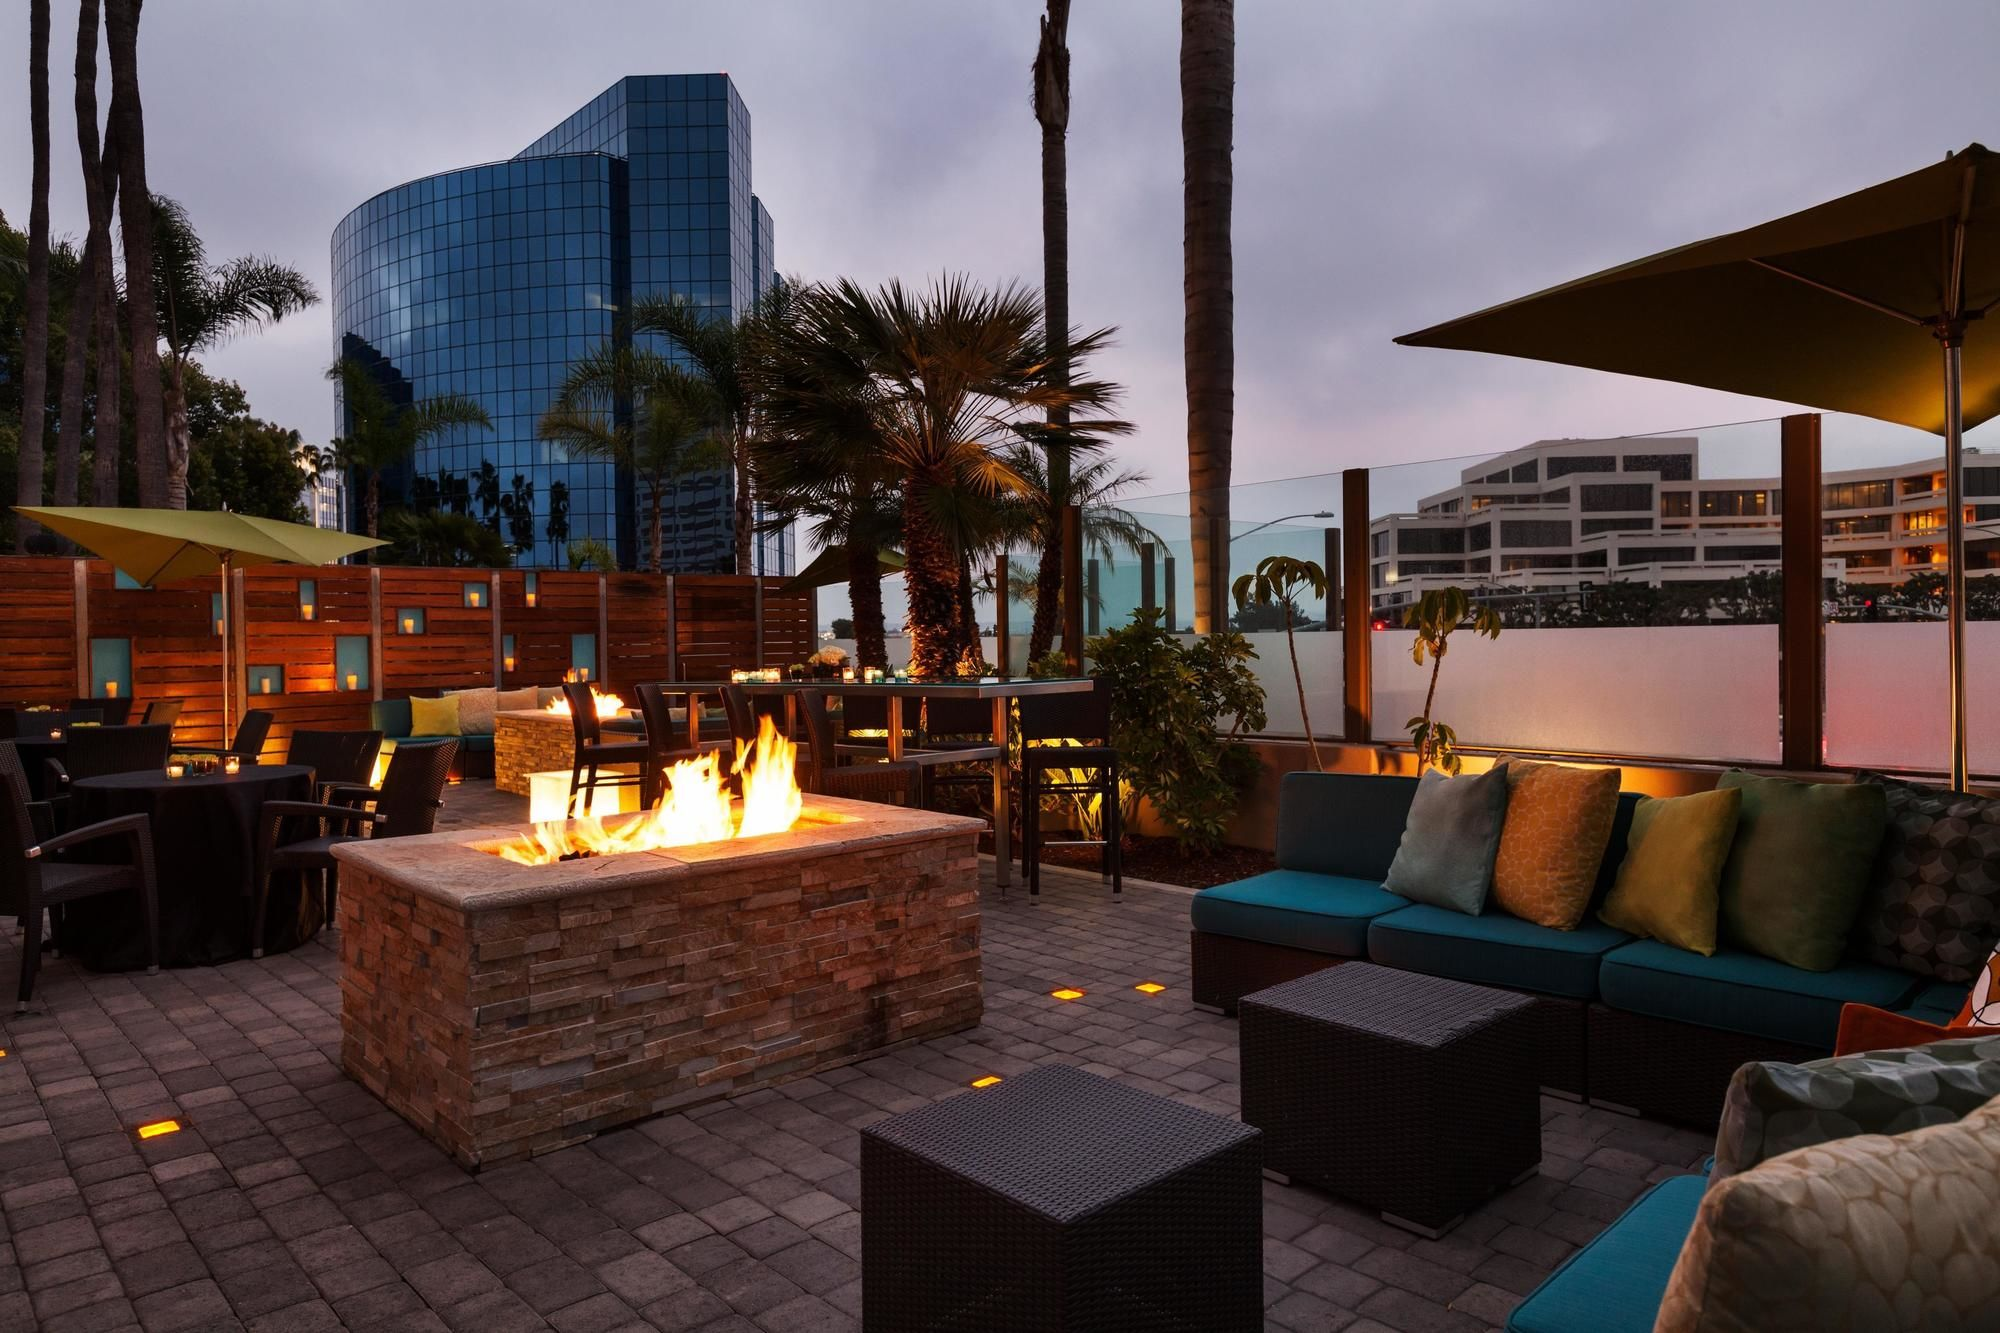 San Diego Hotel Coupons For San Diego California